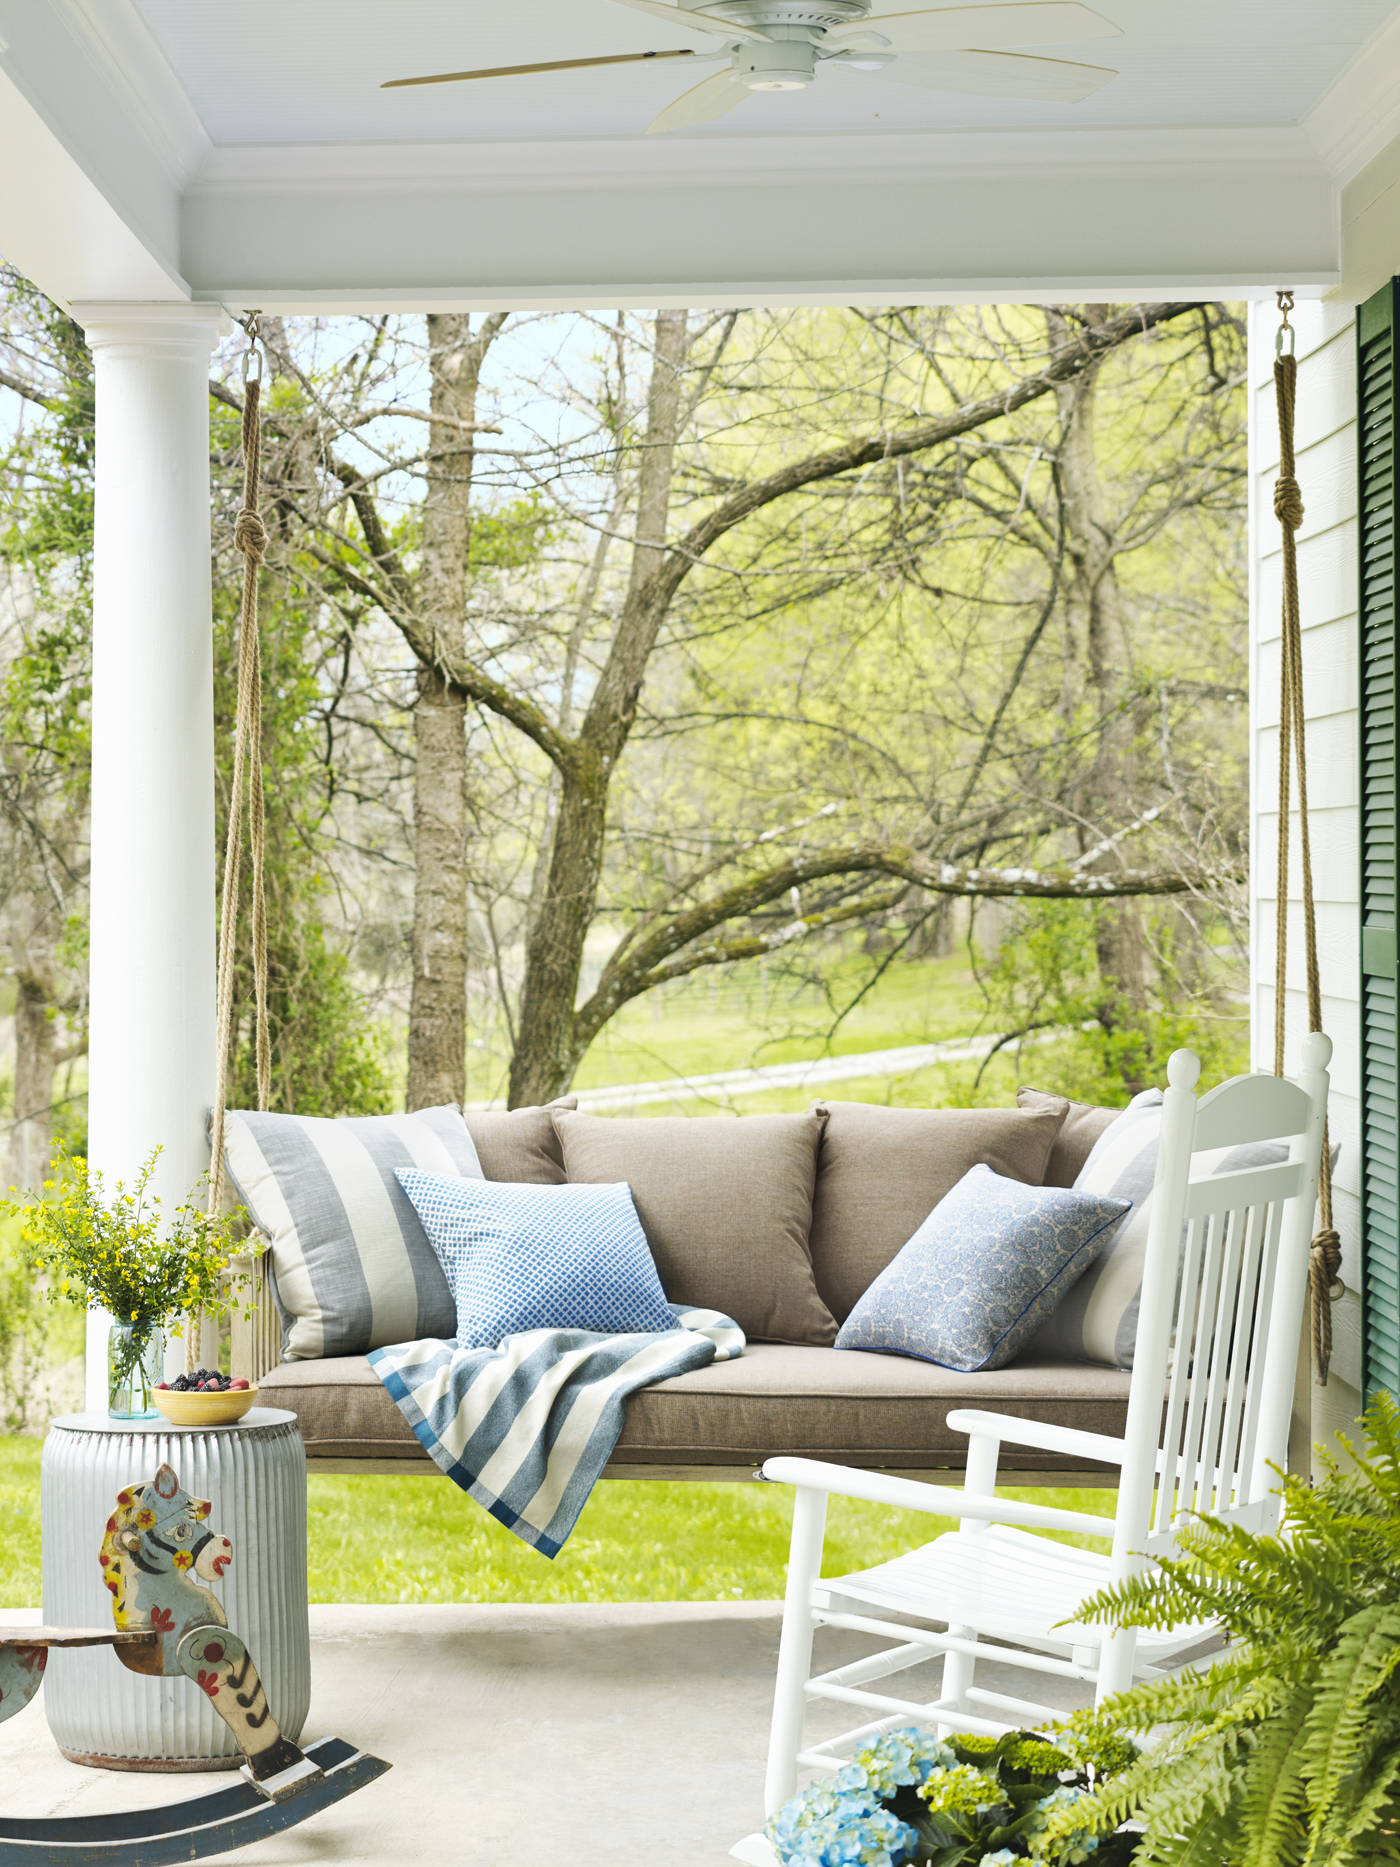 Farmhouse Front Porch Swing Getting Ready For Summer Enliven Your Porch With Comfy Swings